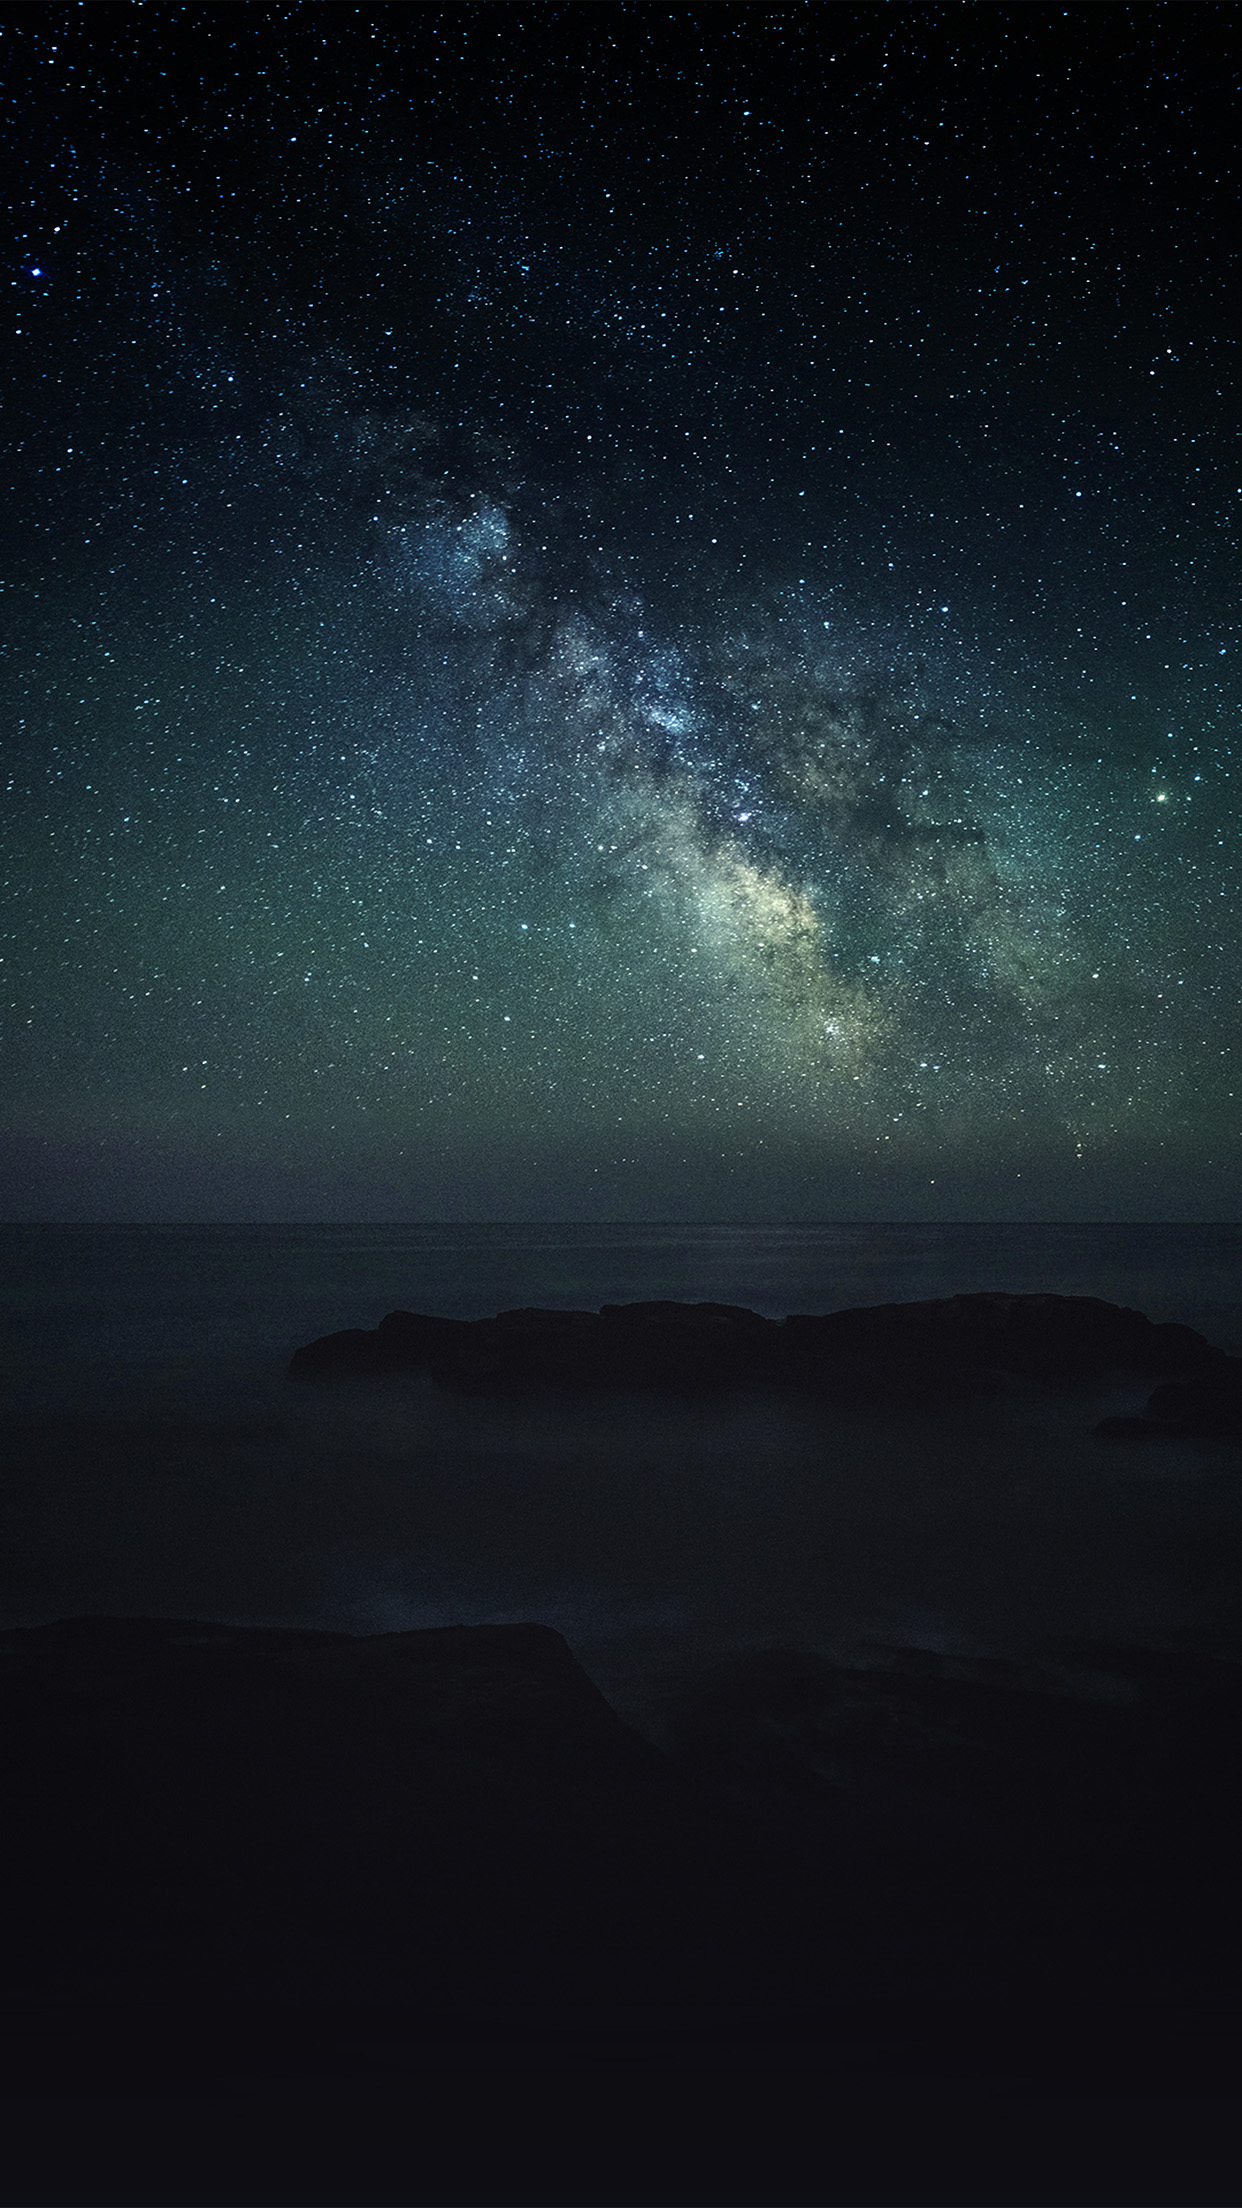 For iphone x iphonexpapers - Space night sky wallpaper ...